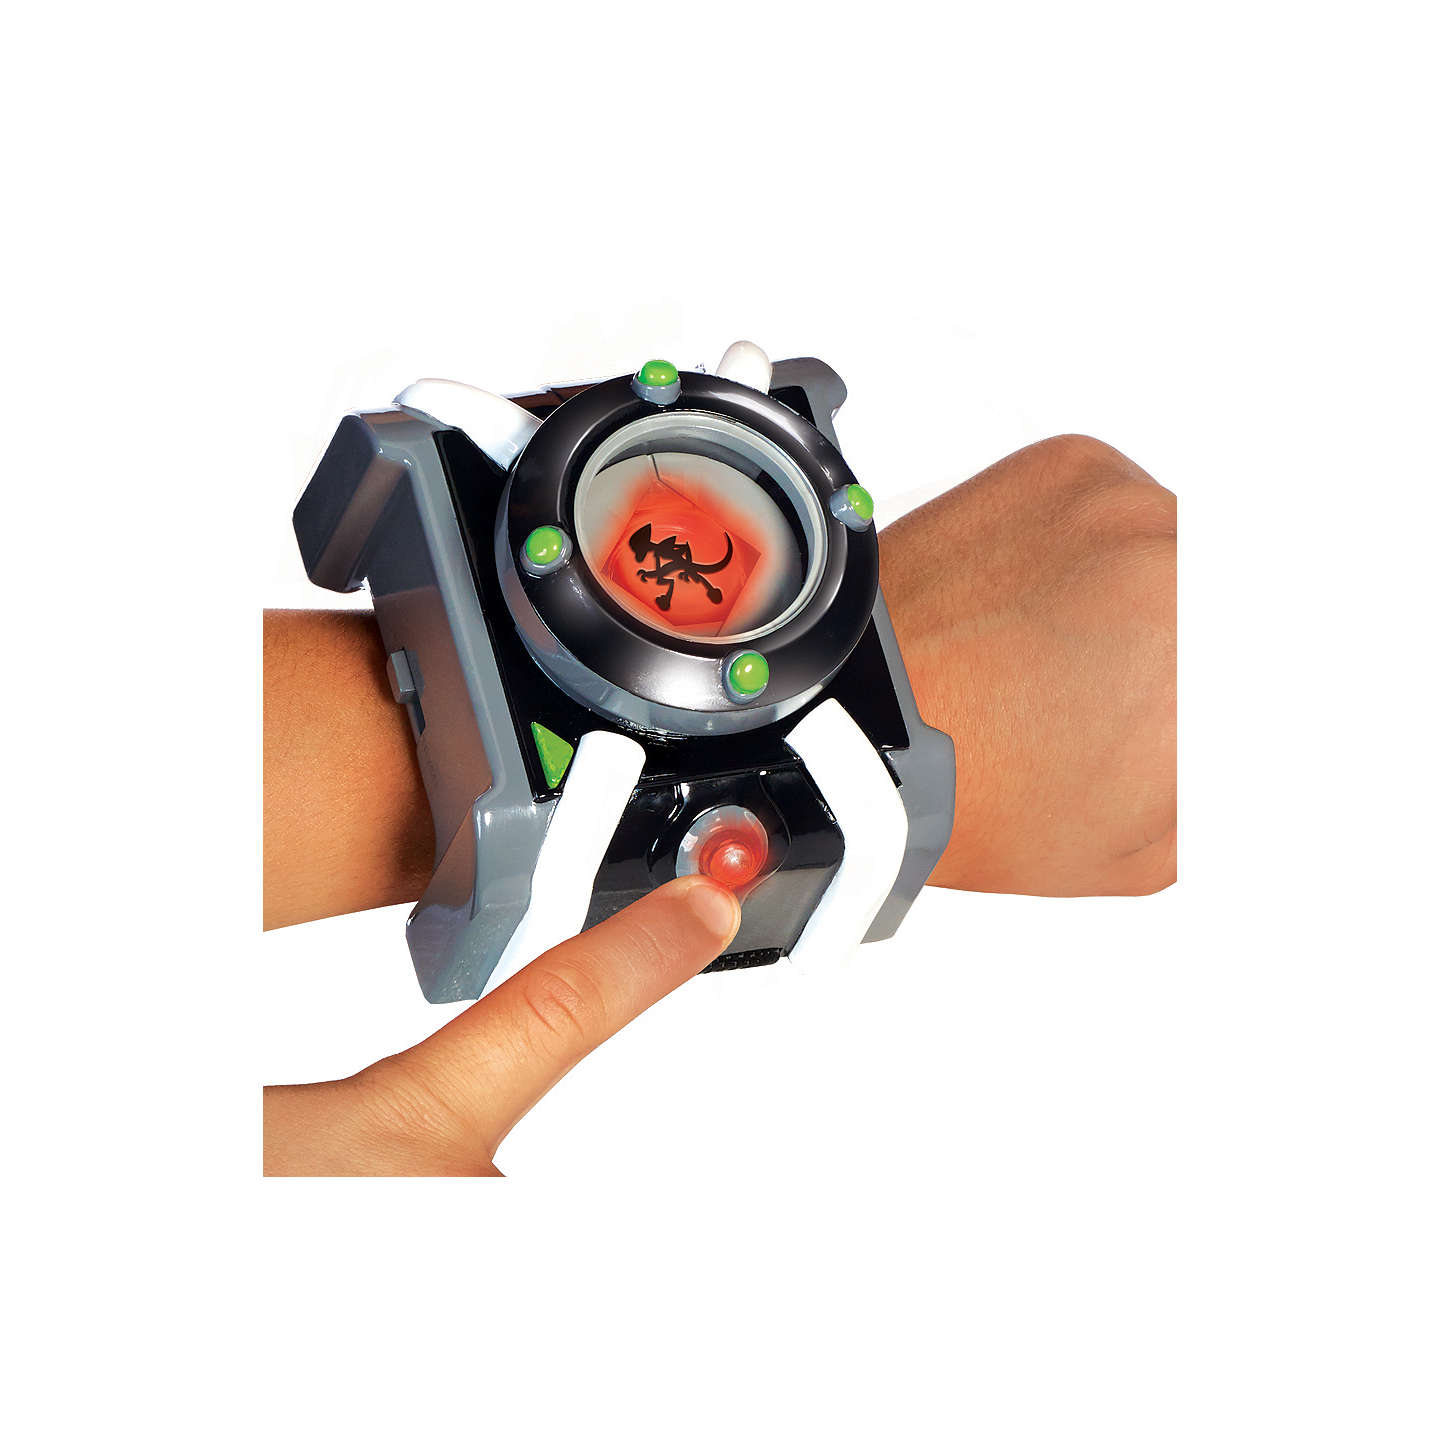 BuyBen 10 Deluxe Omnitrix Watch Online at johnlewis.com